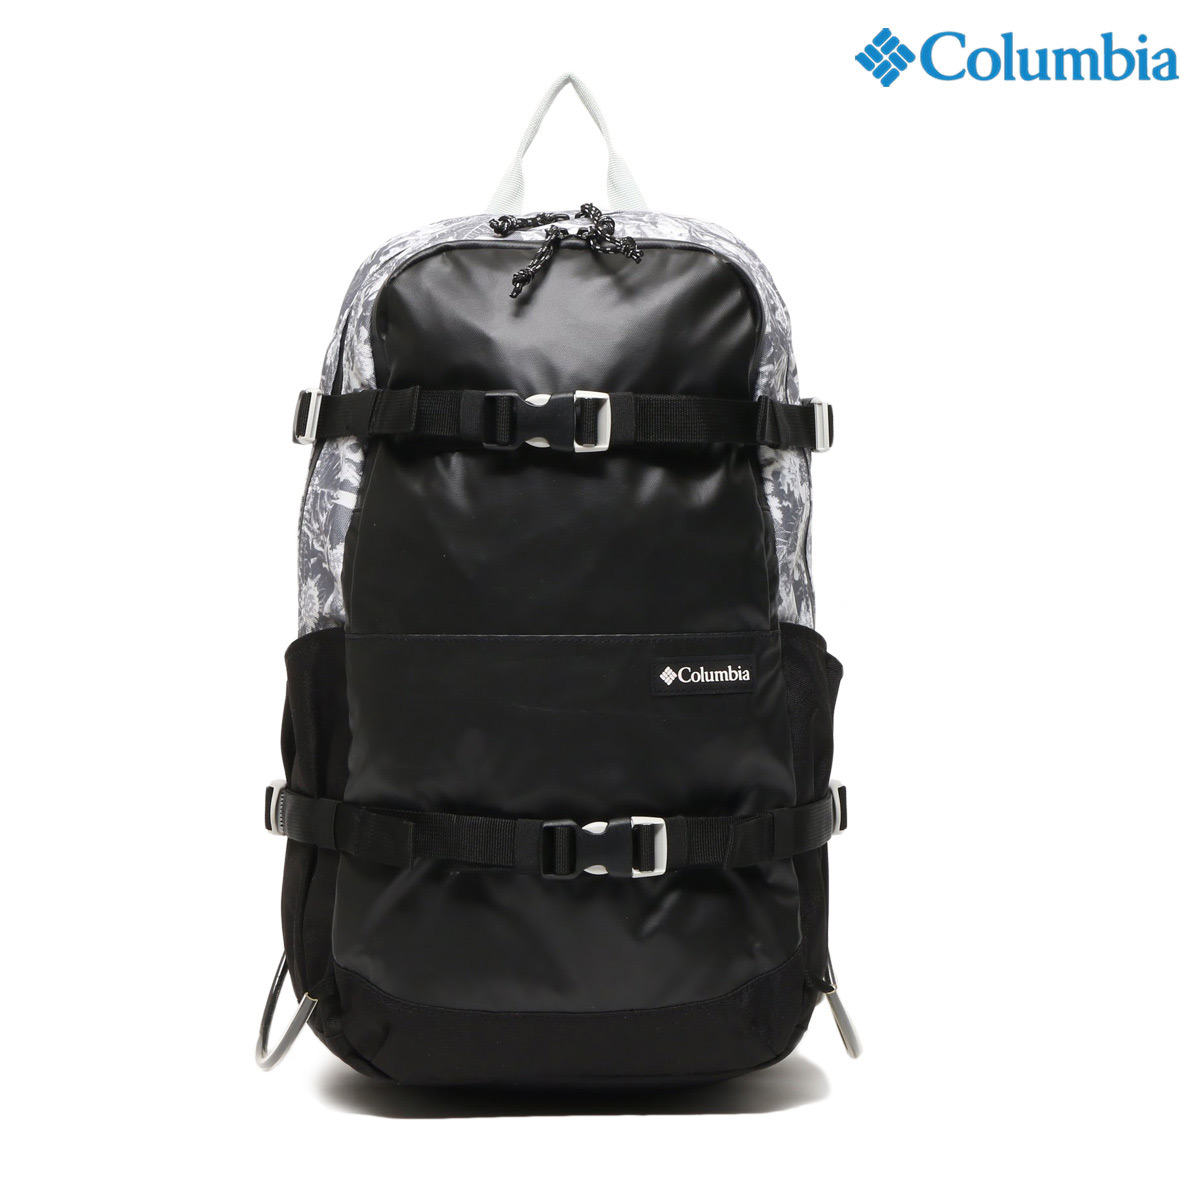 Columbia Third Bluff 25L BACKPACK(White Tropical Timberwolf)(コロンビア サードブラフ25Lバックパック)【メンズ】【レディース】【バックパック】【18SP-I】